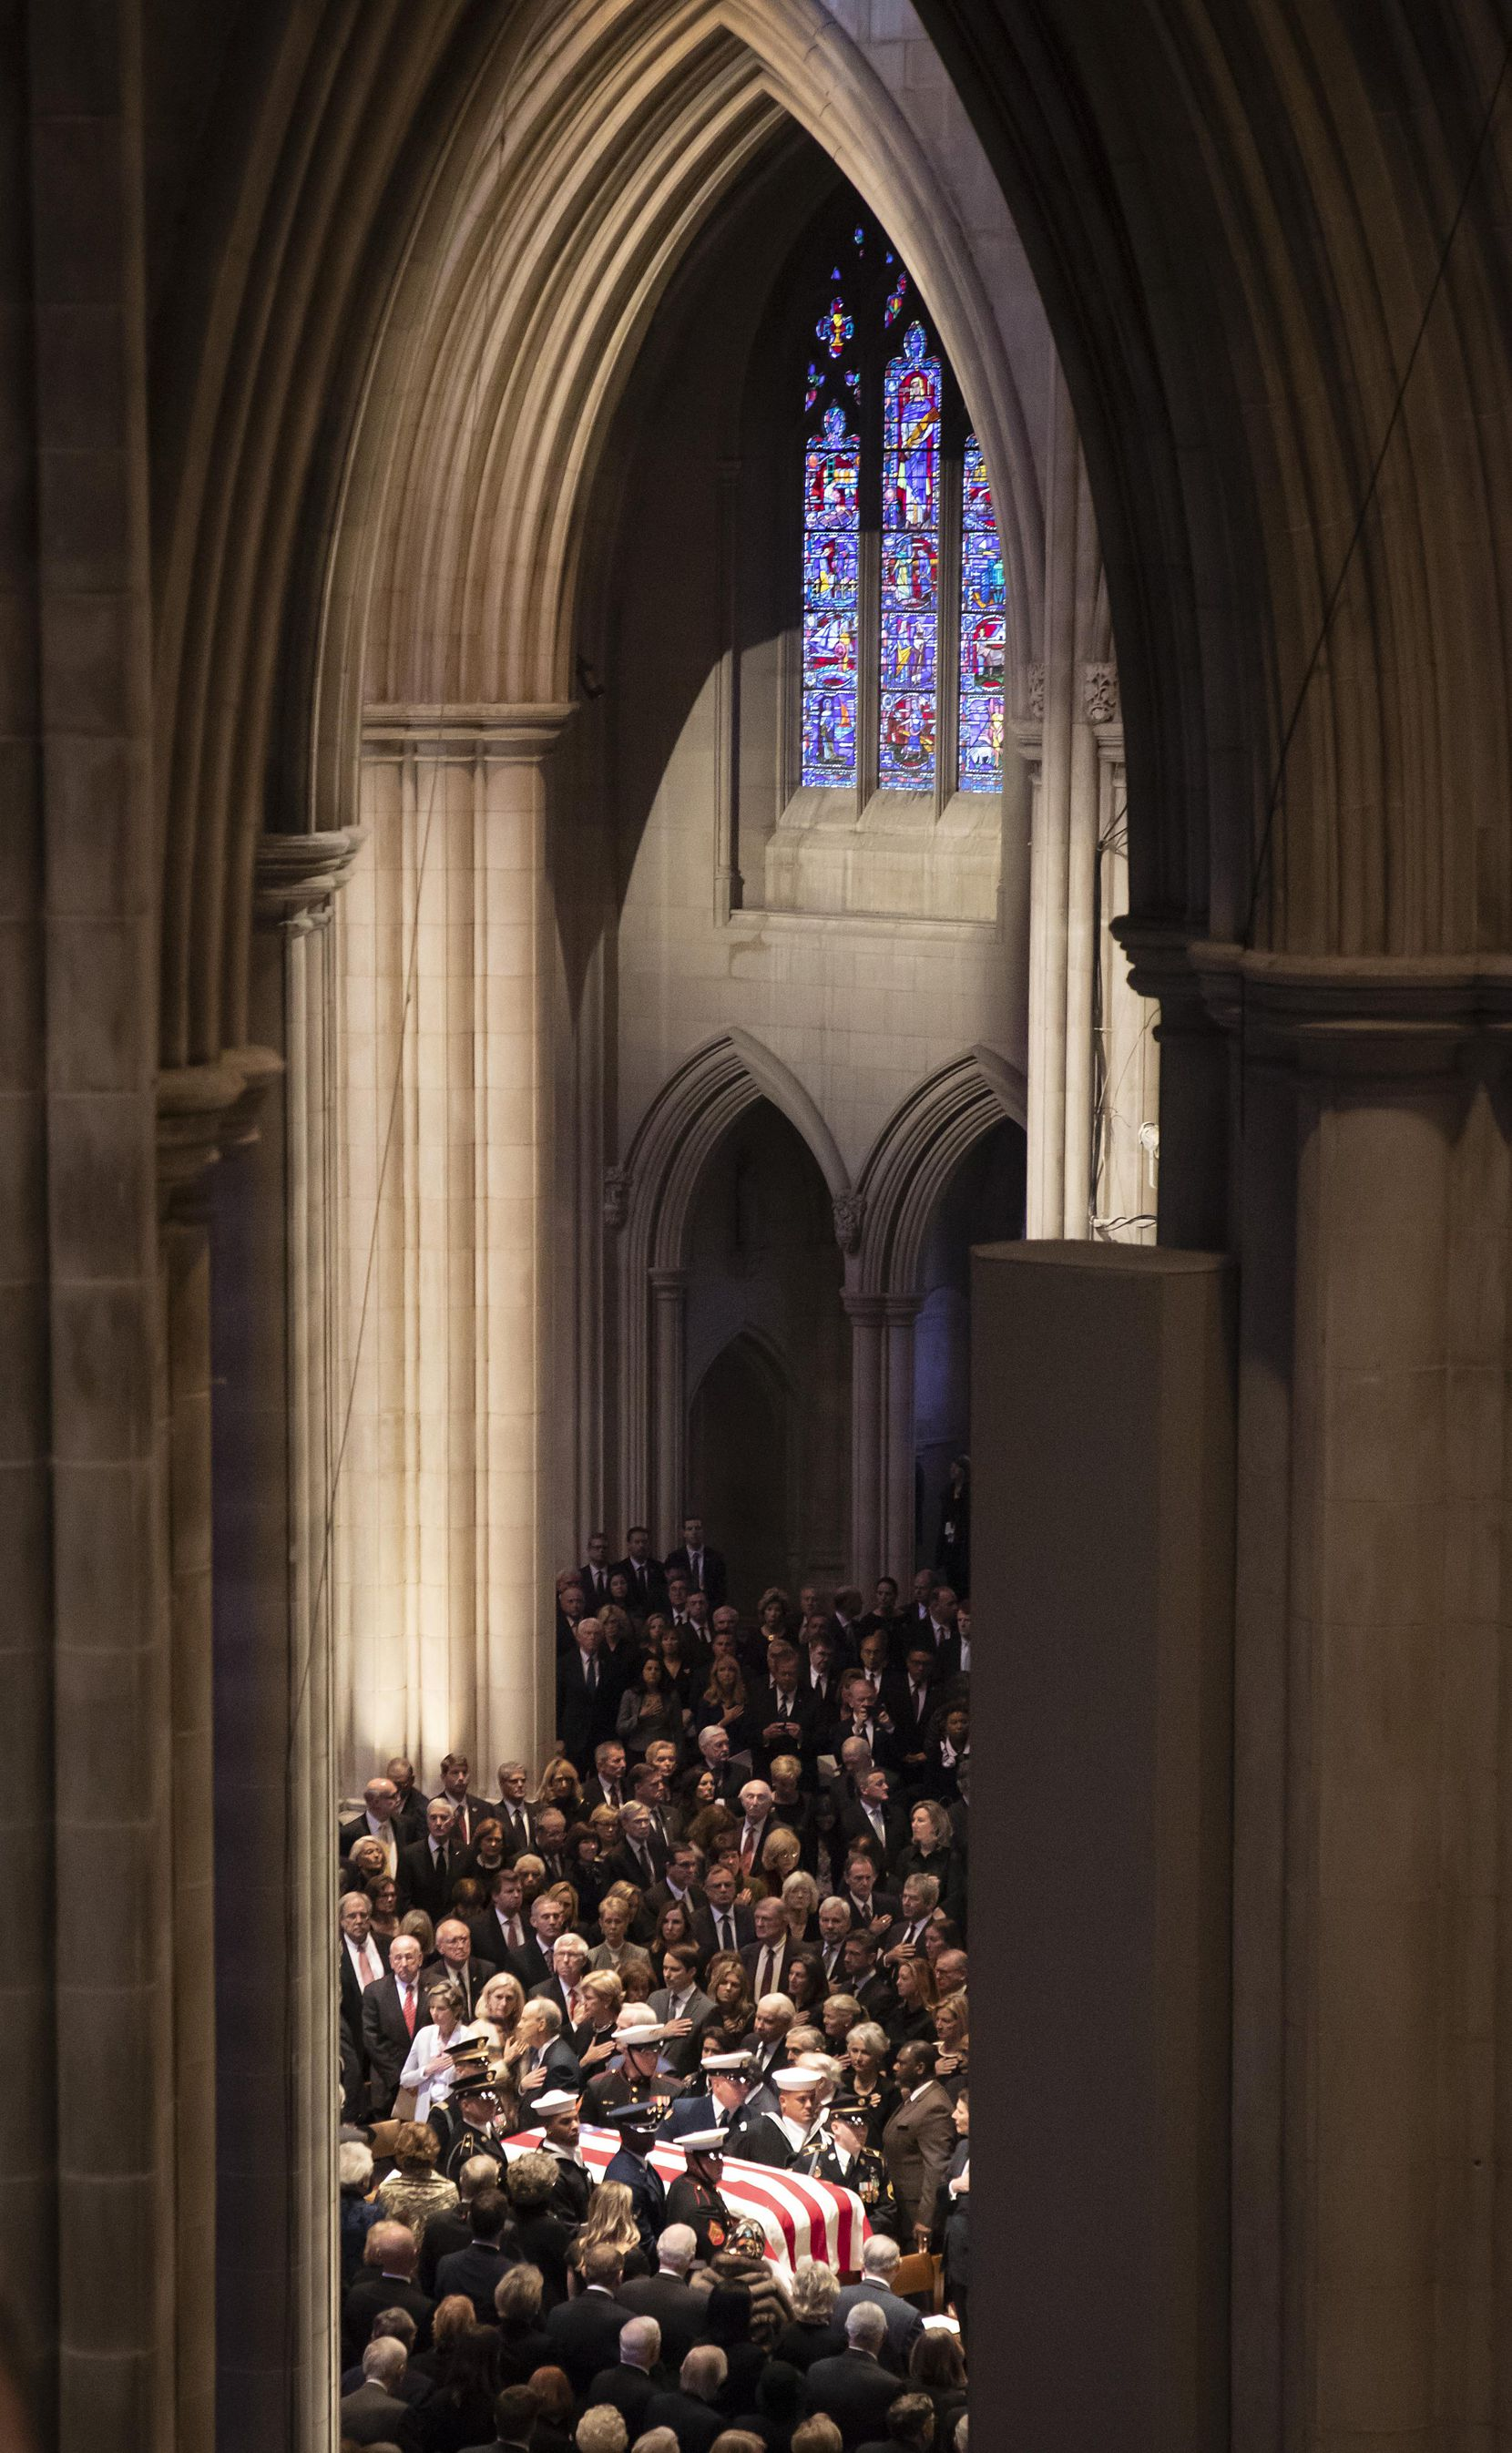 A military honor guard carried the flag-draped casket into the Washington National Cathedral at the beginning of the state funeral.